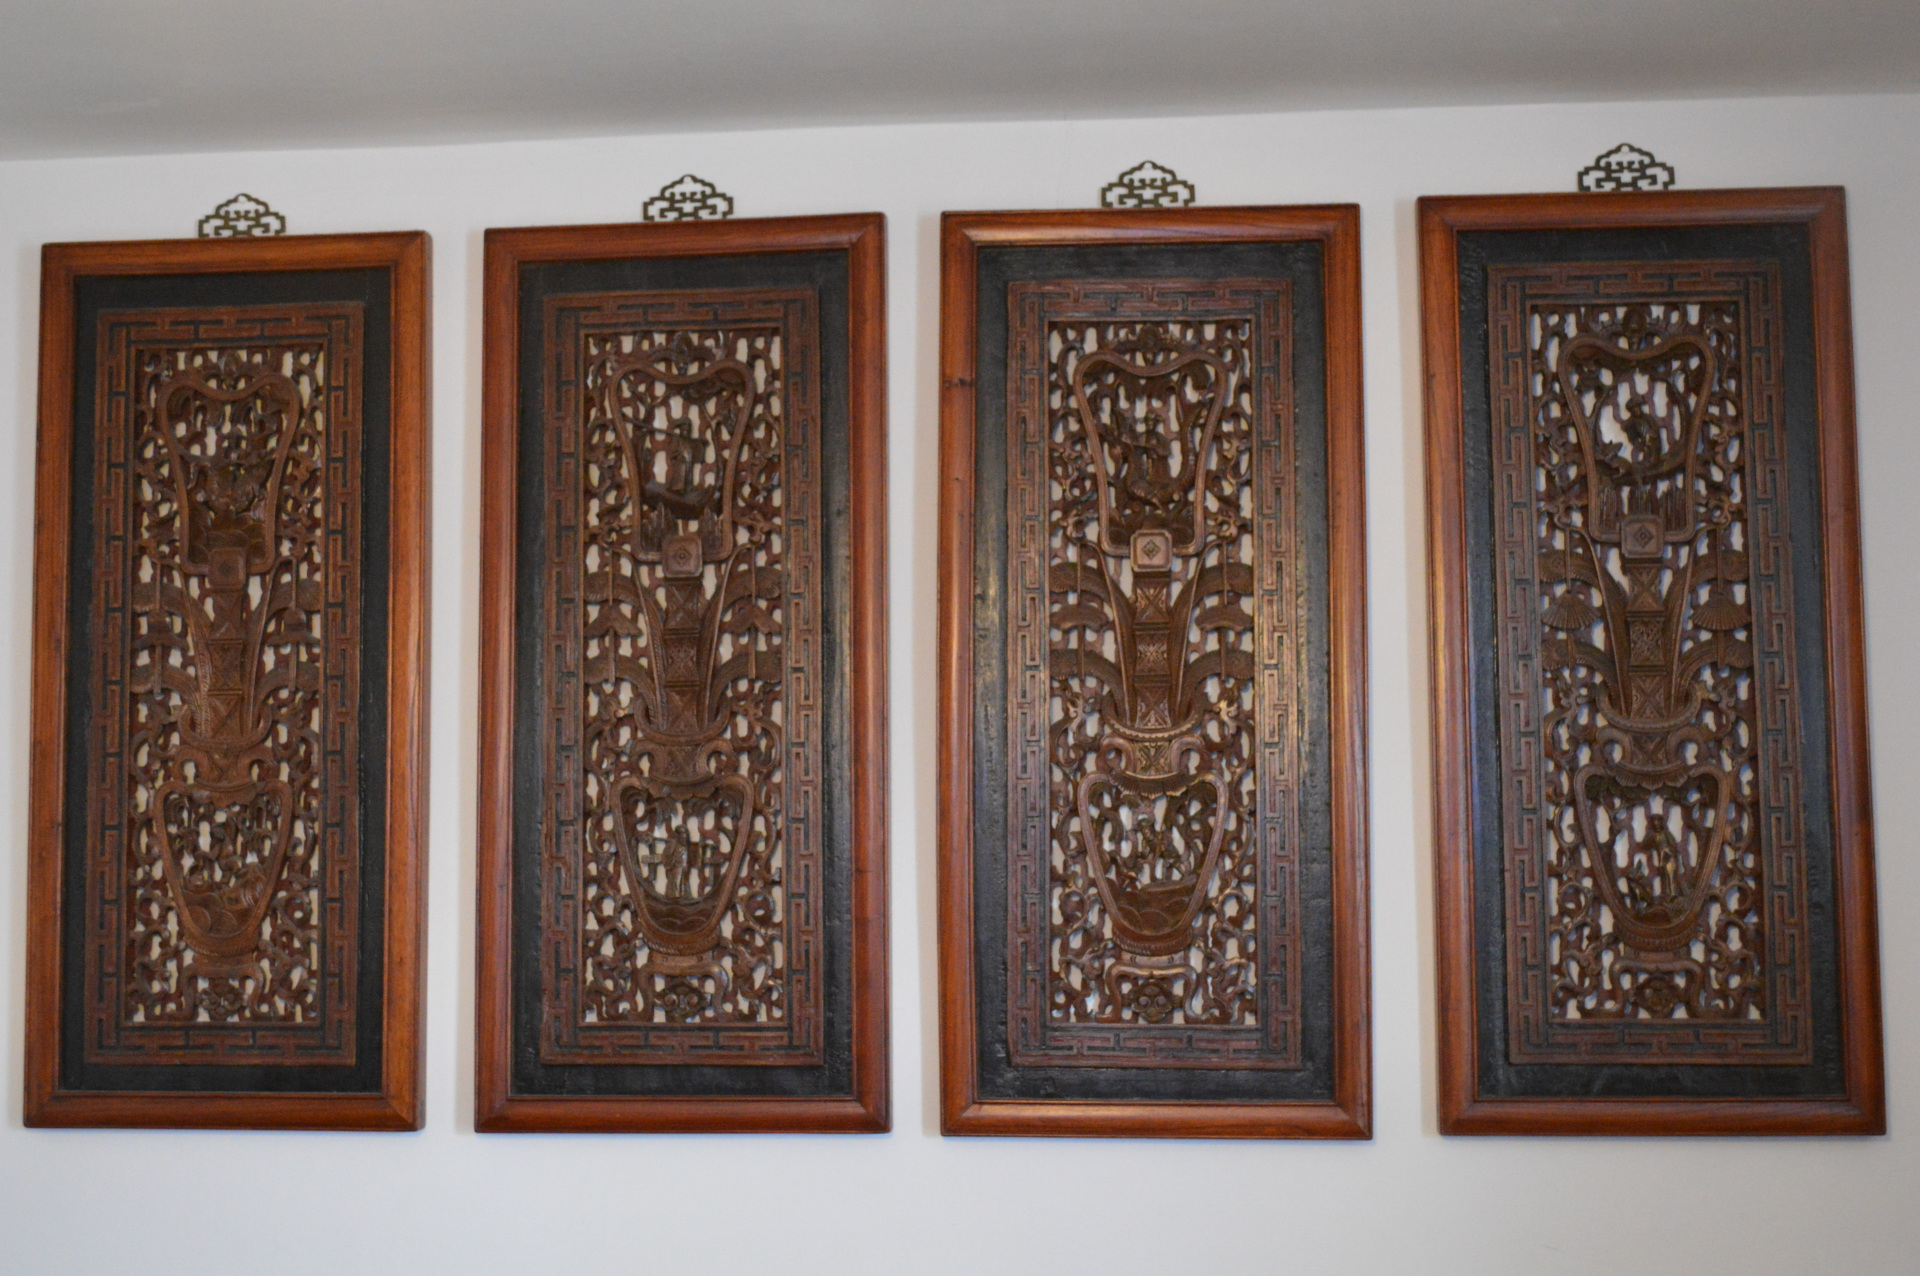 Chinese wooden panels